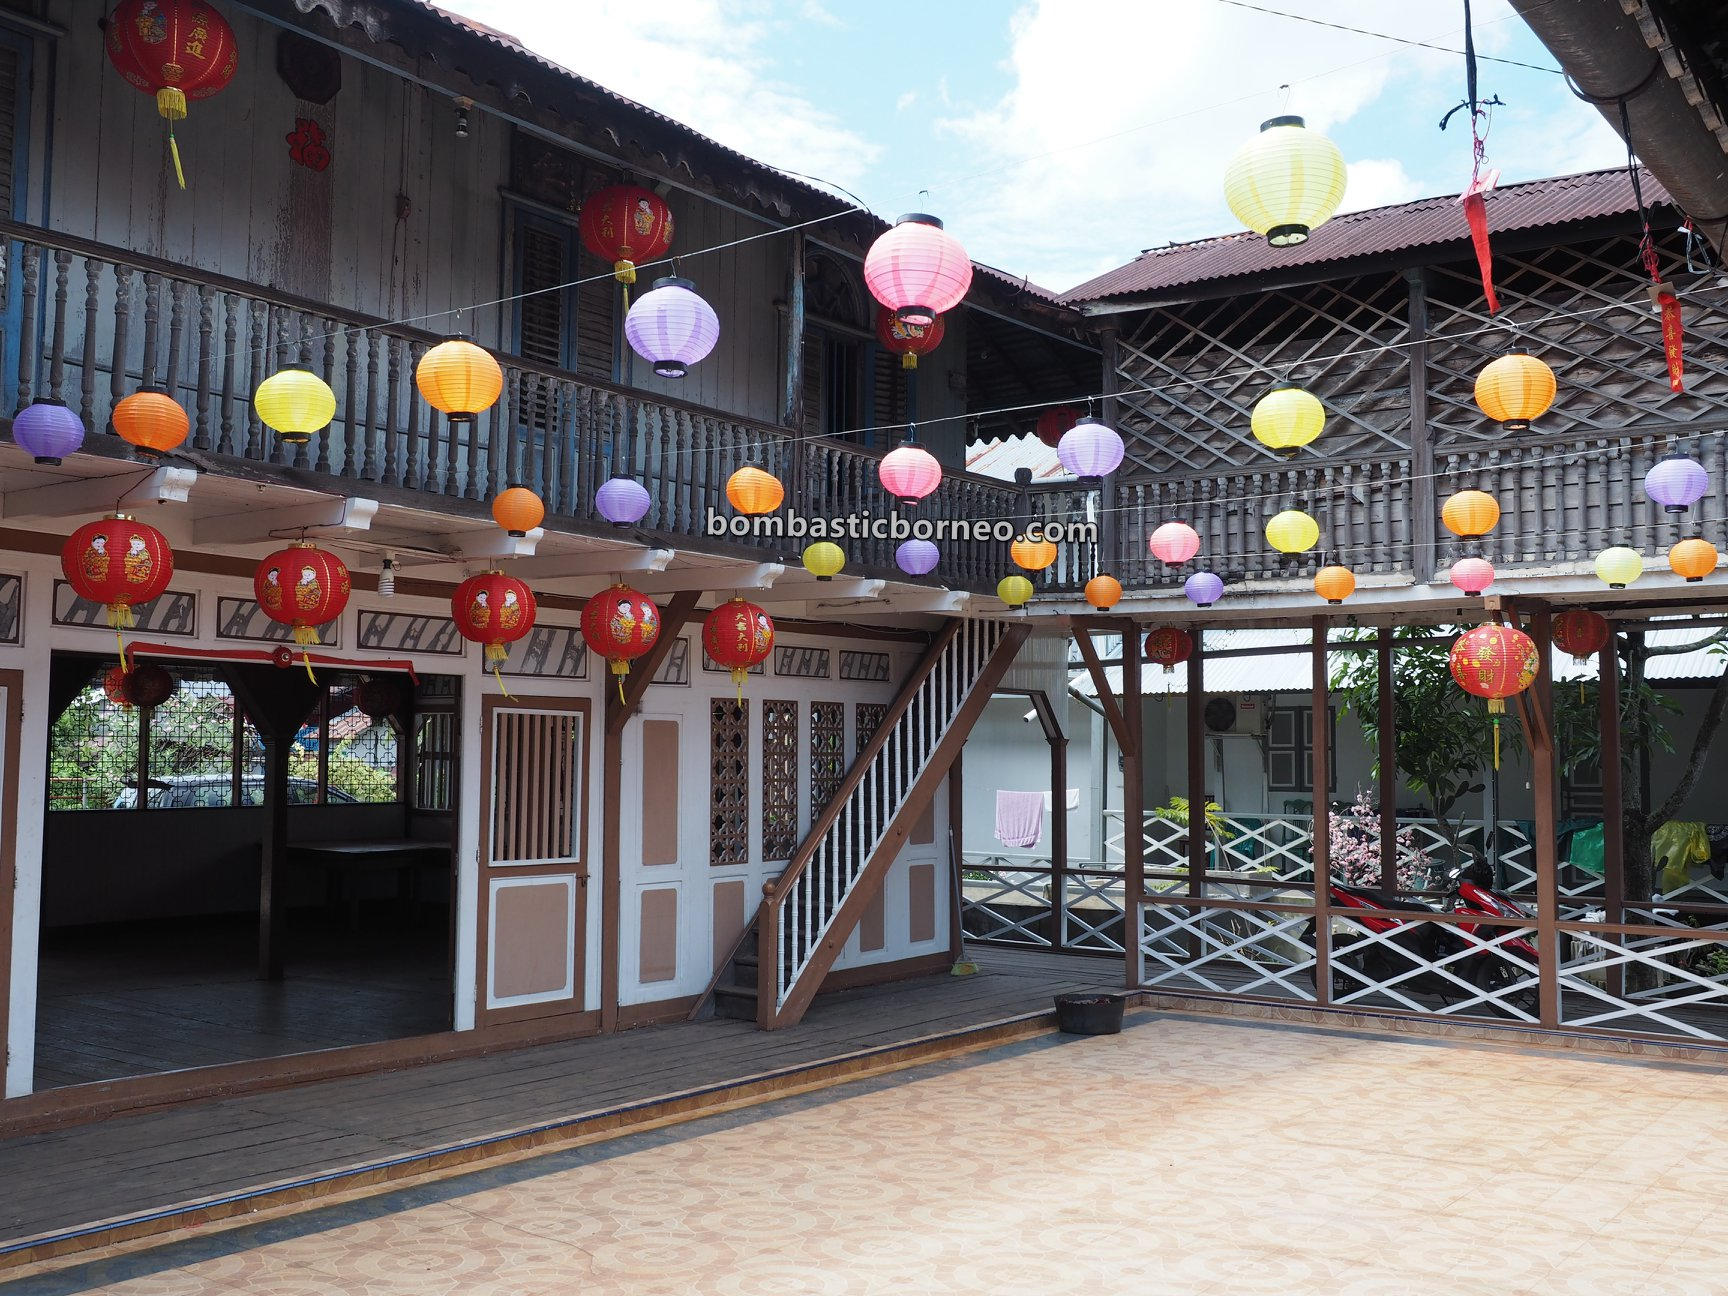 Bangunan Cagar Budaya, authentic, traditional house, chinese, warisan, heritage, backpackers, destination, Tourism, tourist attraction, Travel Guide, Trans Borneo, 西加里曼丹, 山口洋旅游景点, 謝協勝华侨遗产